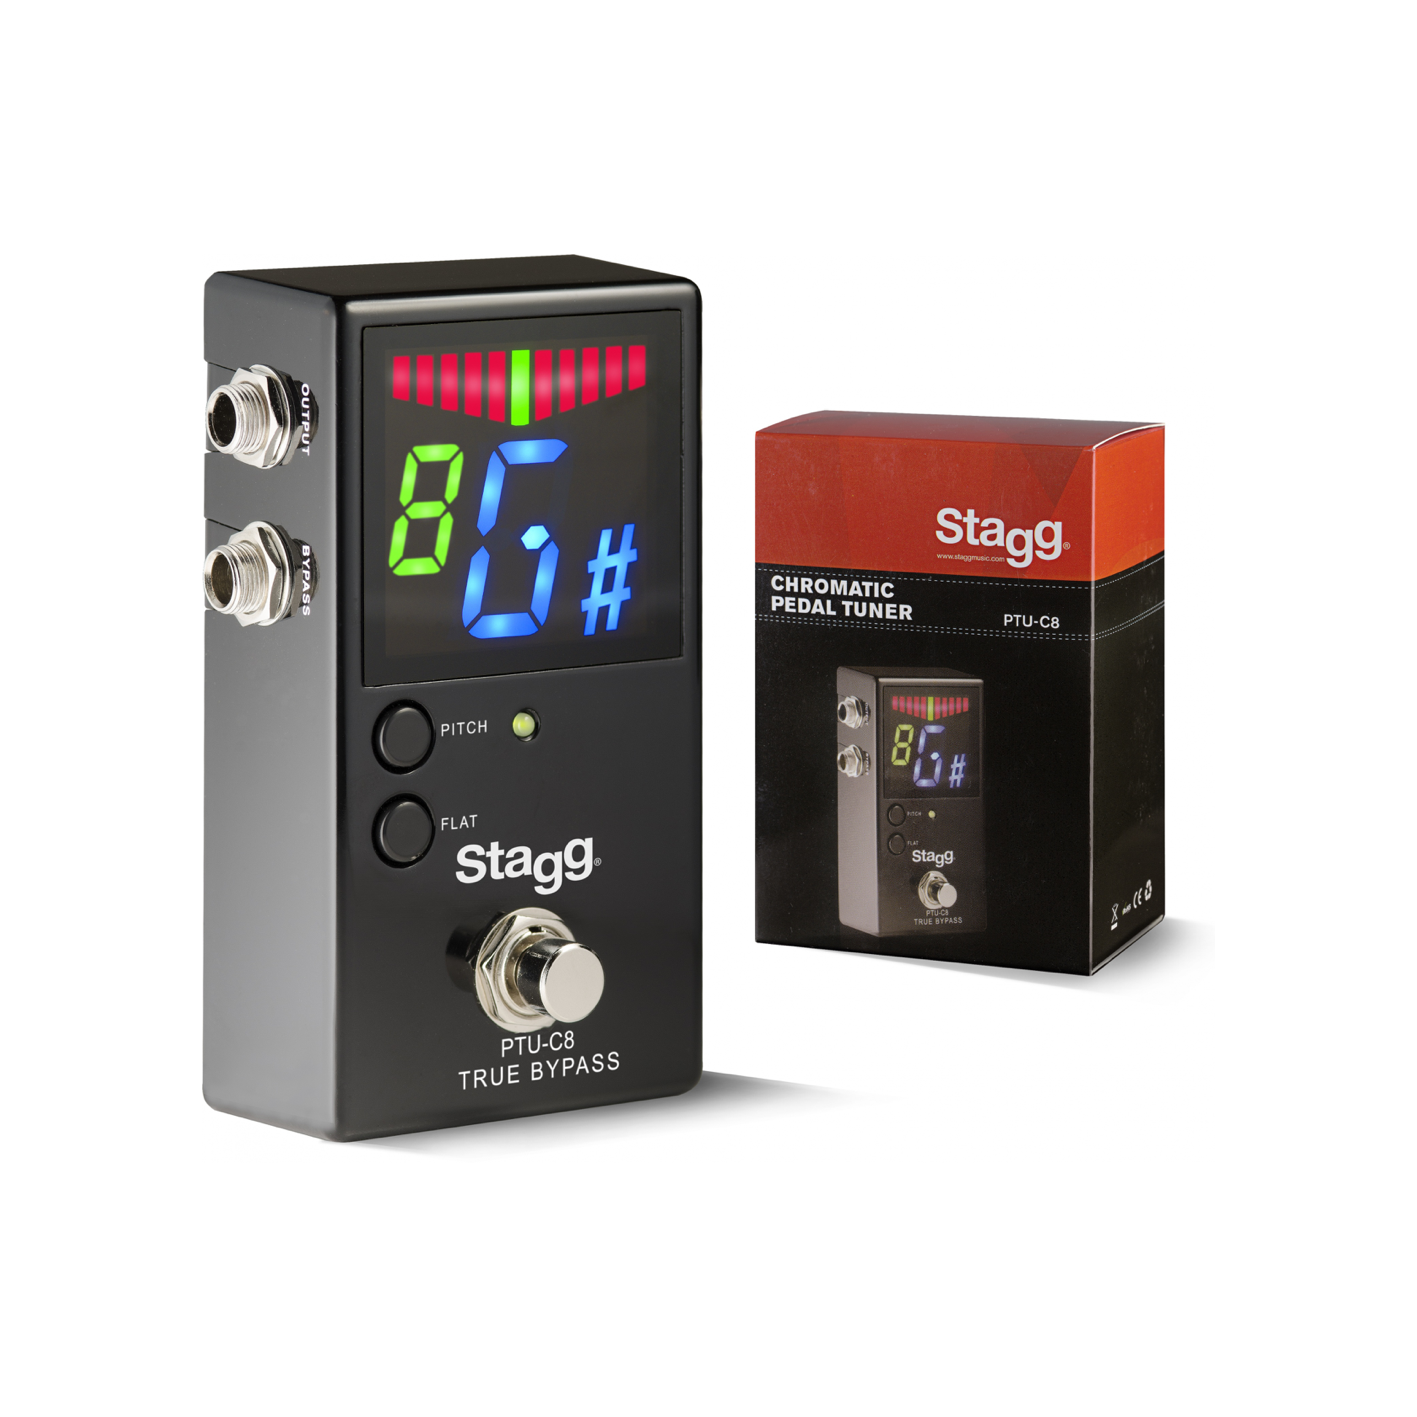 Stagg PTU-C8 Chromatic Pedal Tuner